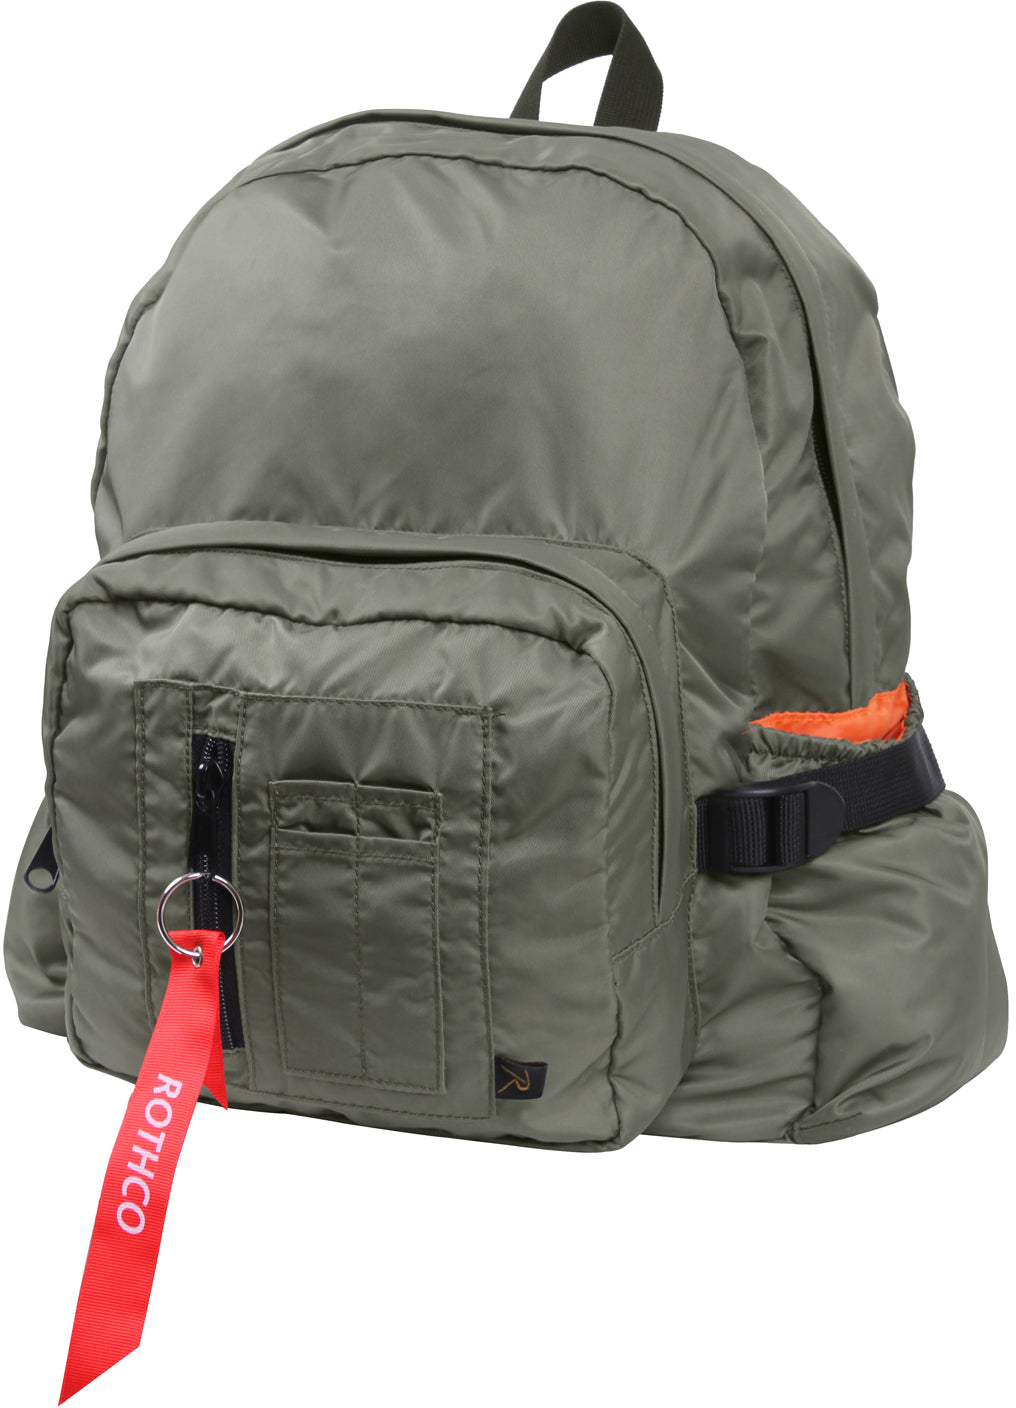 Sage Green - MA-1 Bomber Jacket Mini Backpack with Orange Lining